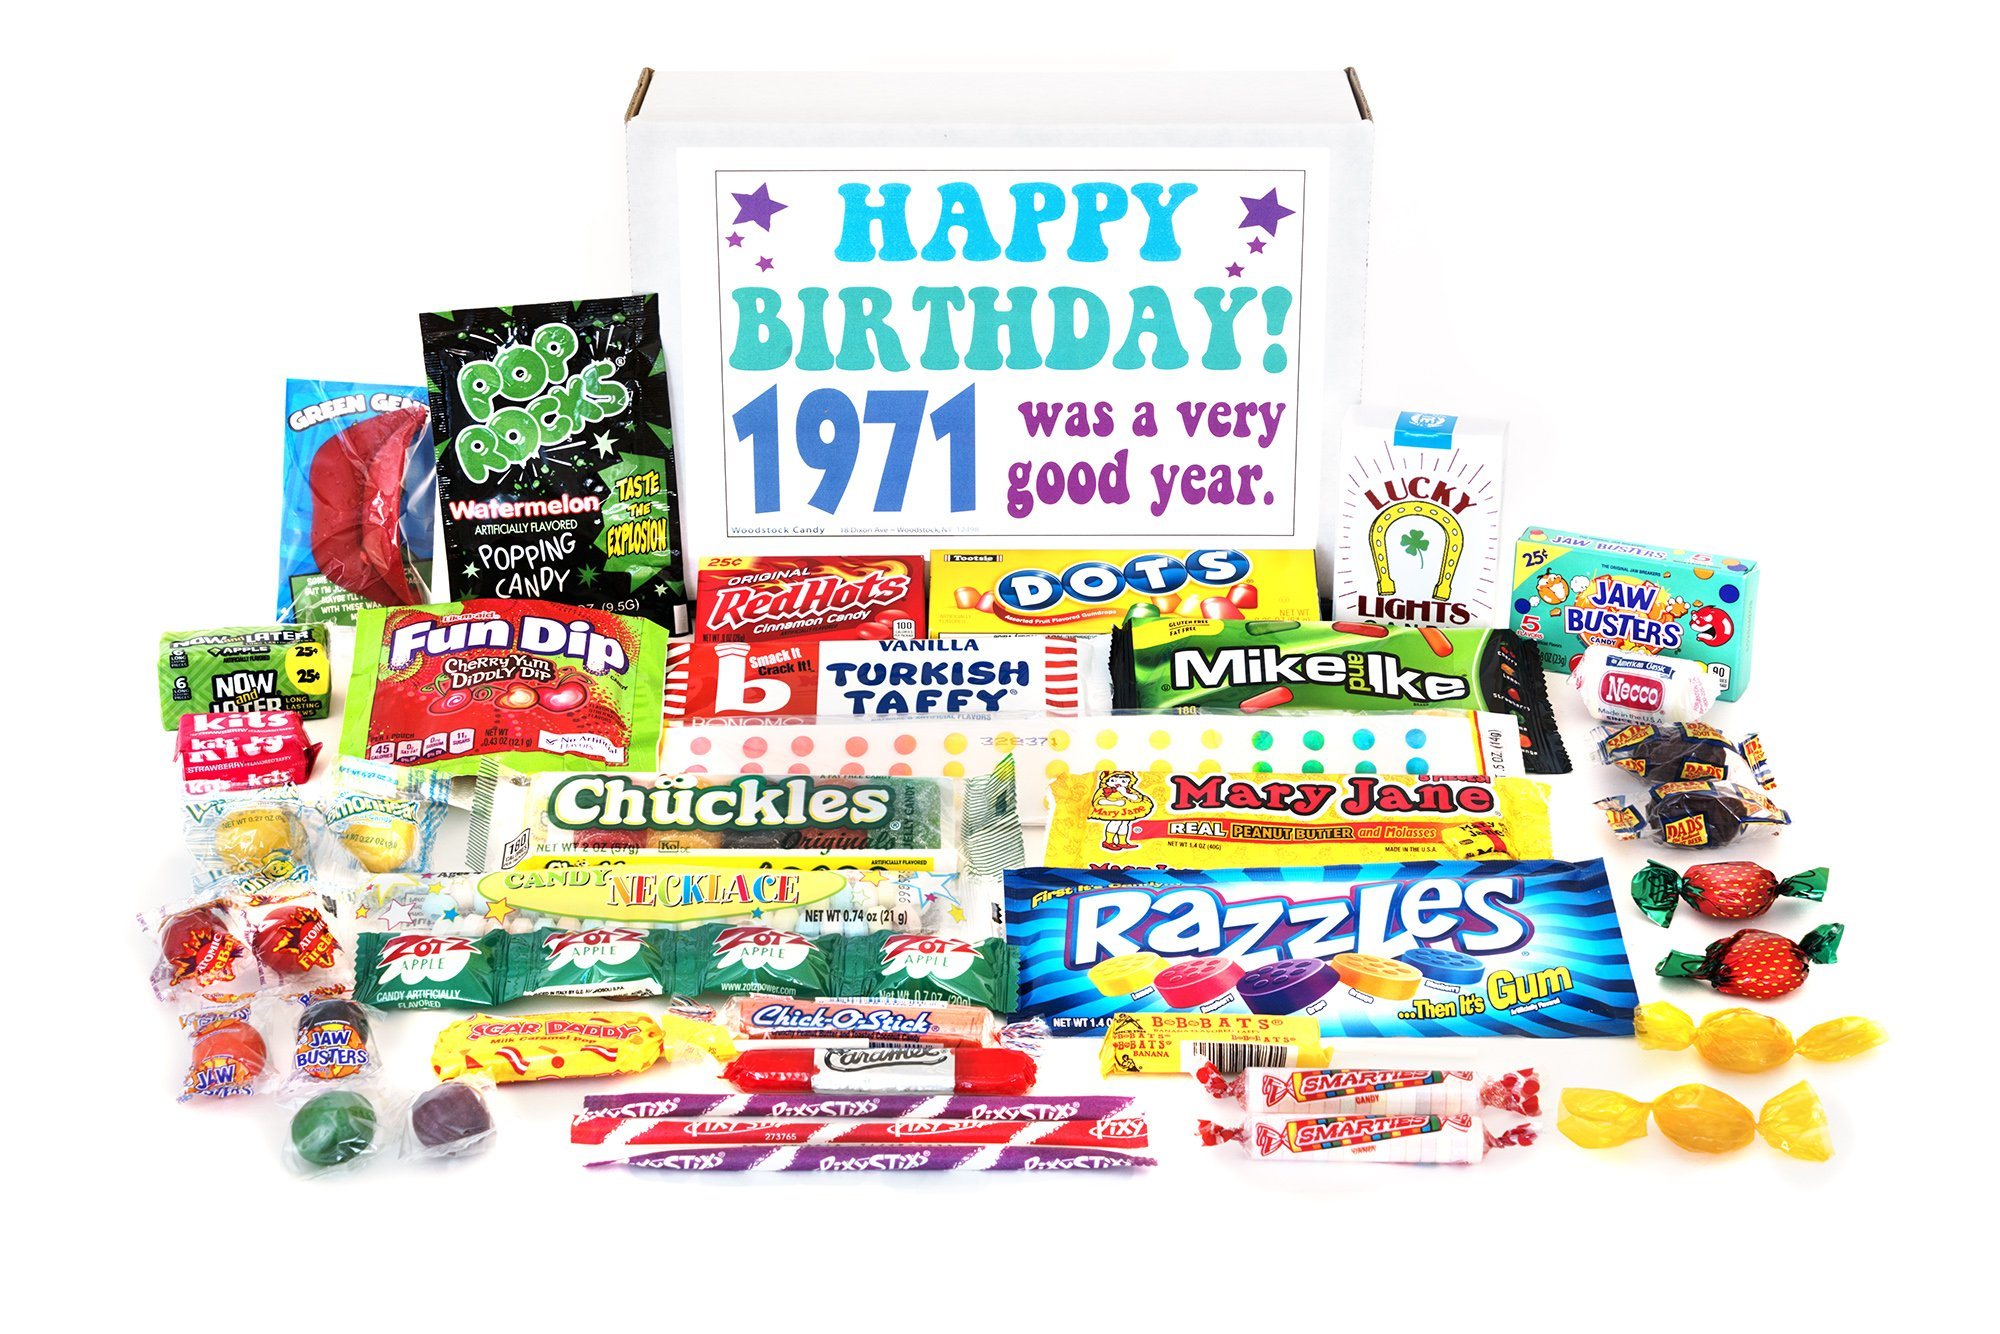 Woodstock Candy ~ 1971 48th Birthday Gift Box Nostalgic Retro Candy Mix from Childhood for 48 Year Old Man or Woman Born 1971 Jr